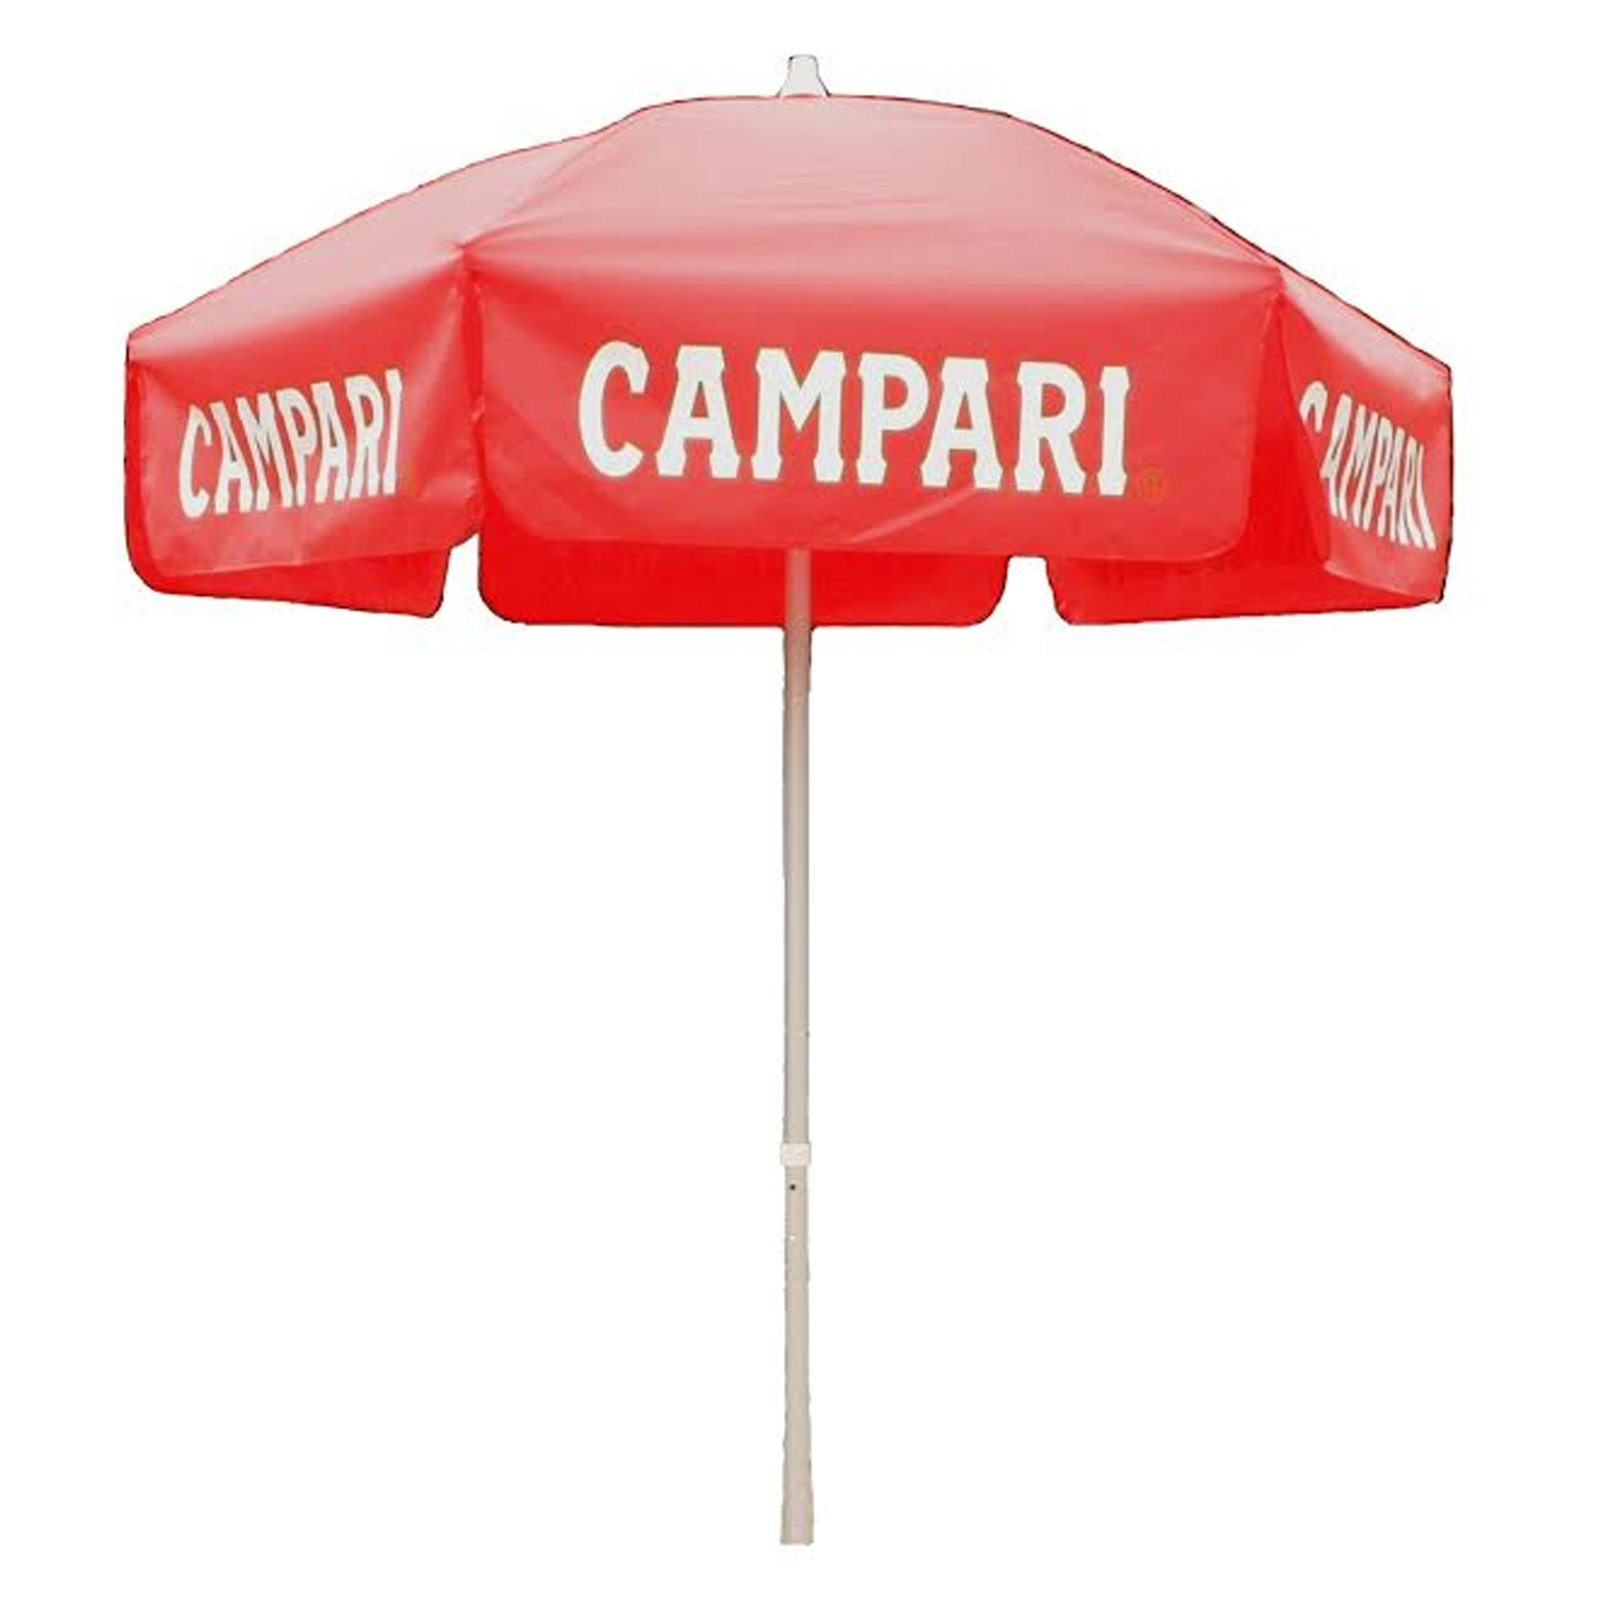 6 Foot Campari Red Push/Tilt Vinyl Umbrella   Patio Pole